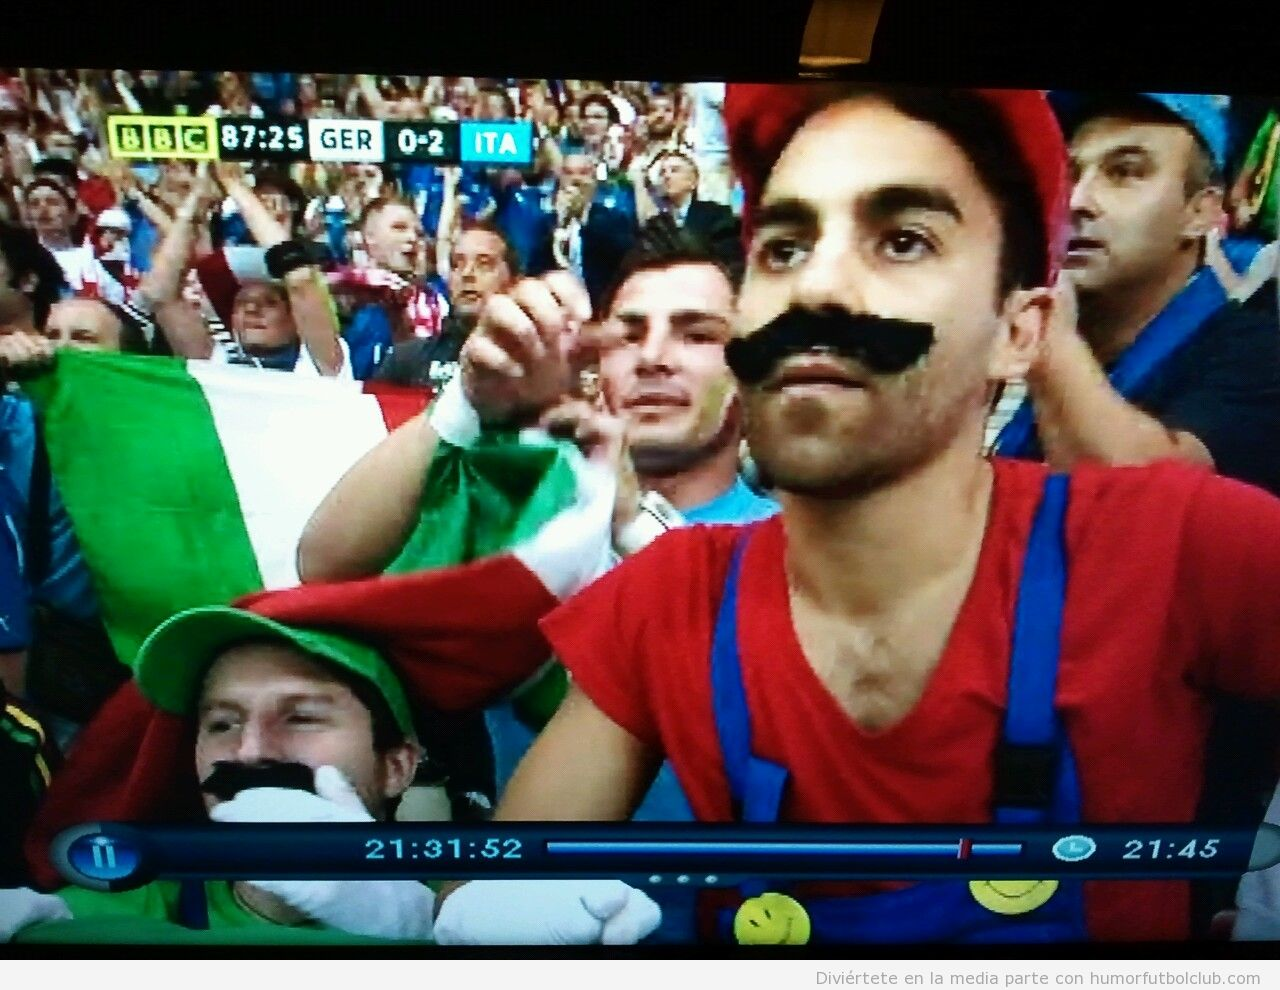 Dos aficionados disfrazados de Mario y Luigi en partido Italia Alemania de semifinales Eurocopa 2012